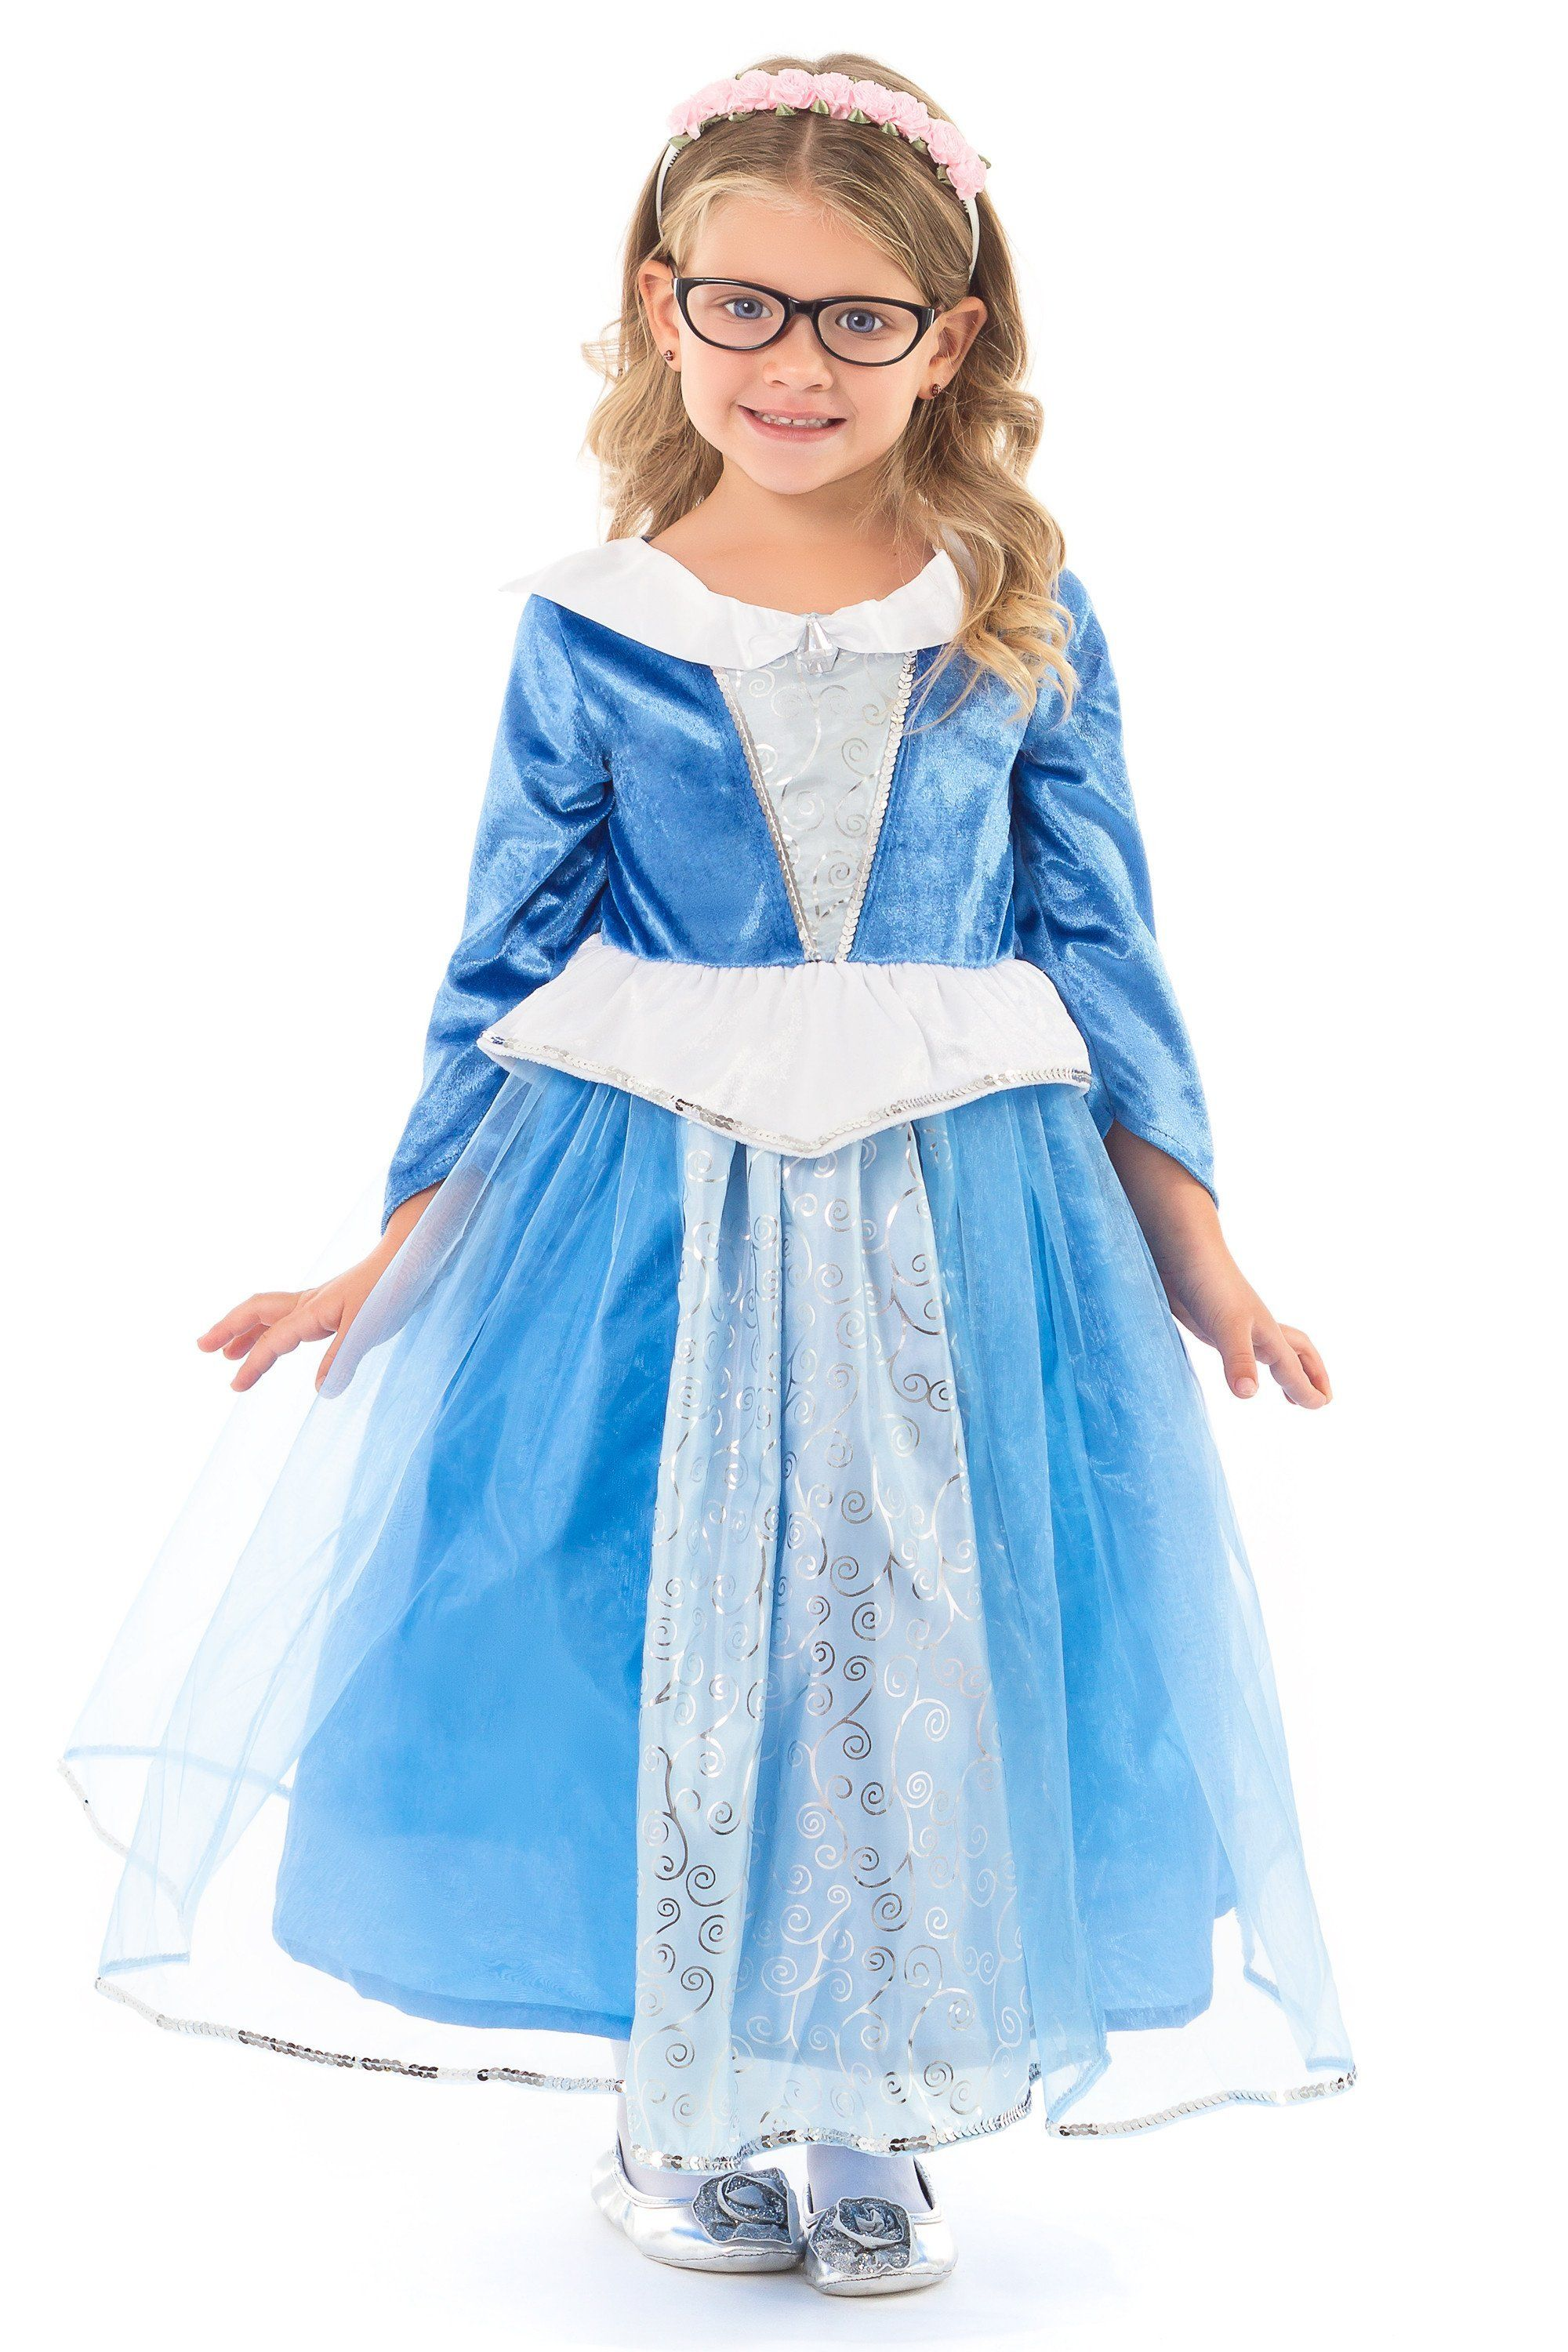 The Deluxe Princess - Deluxe Sleeping Beauty Blue